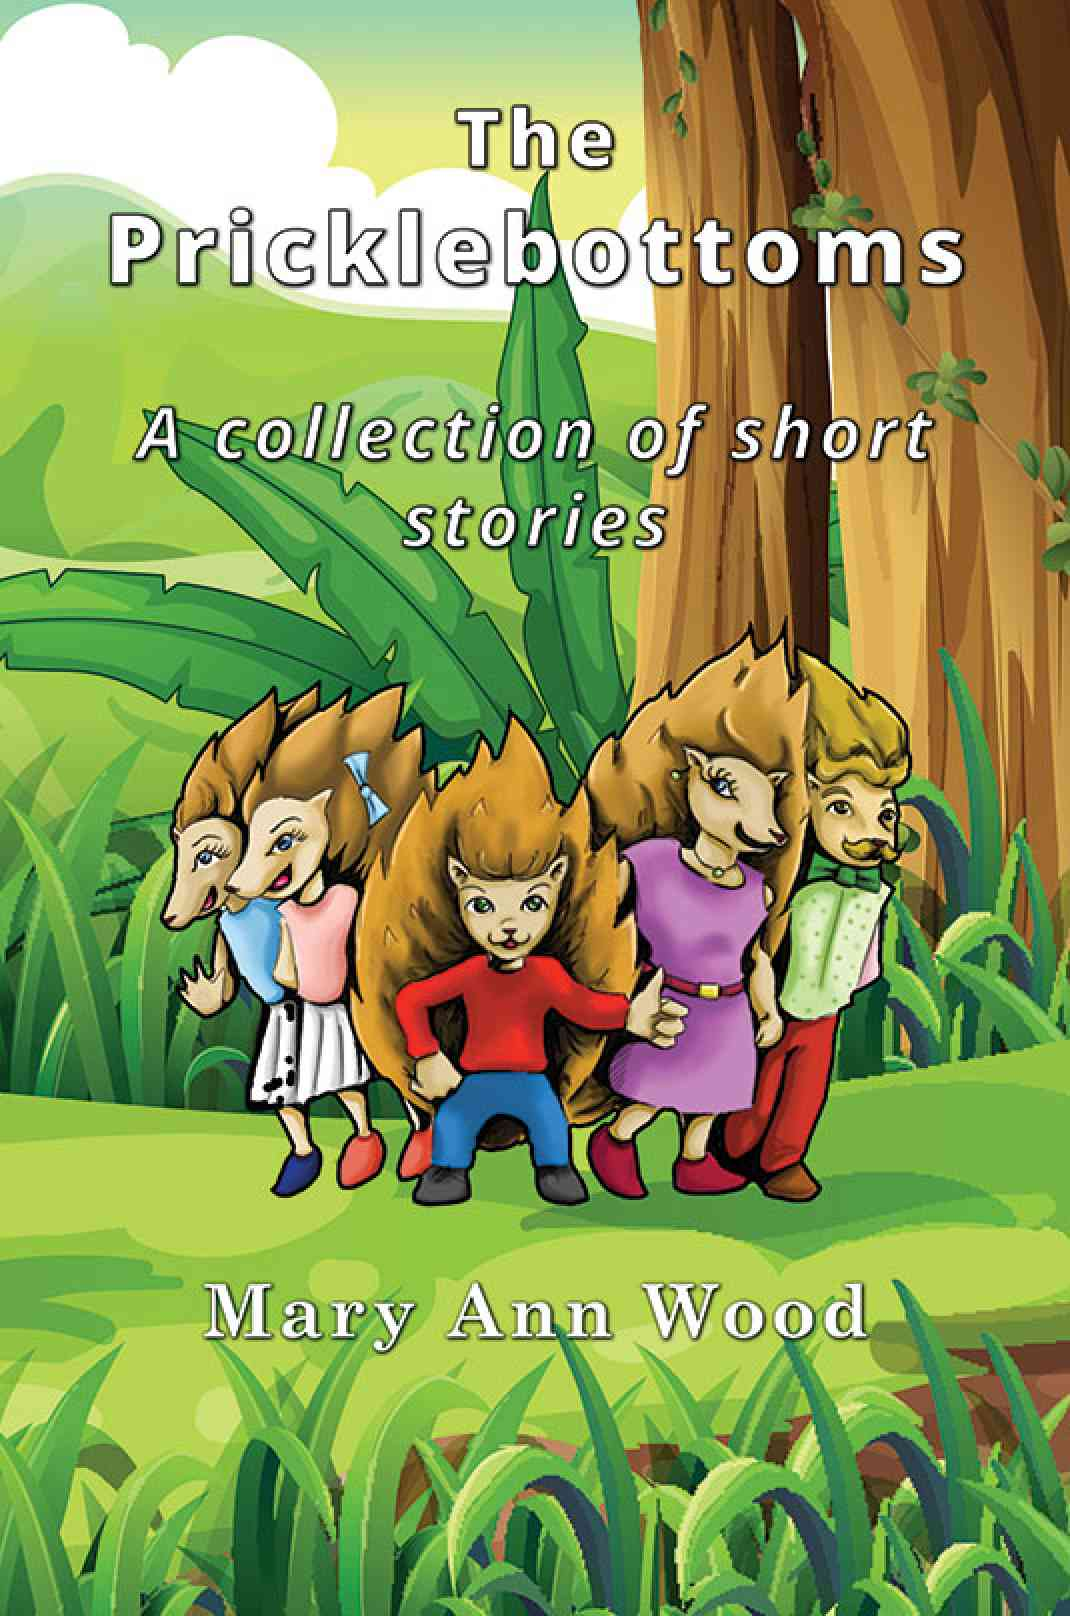 The Pricklebottoms: A collection of short stories